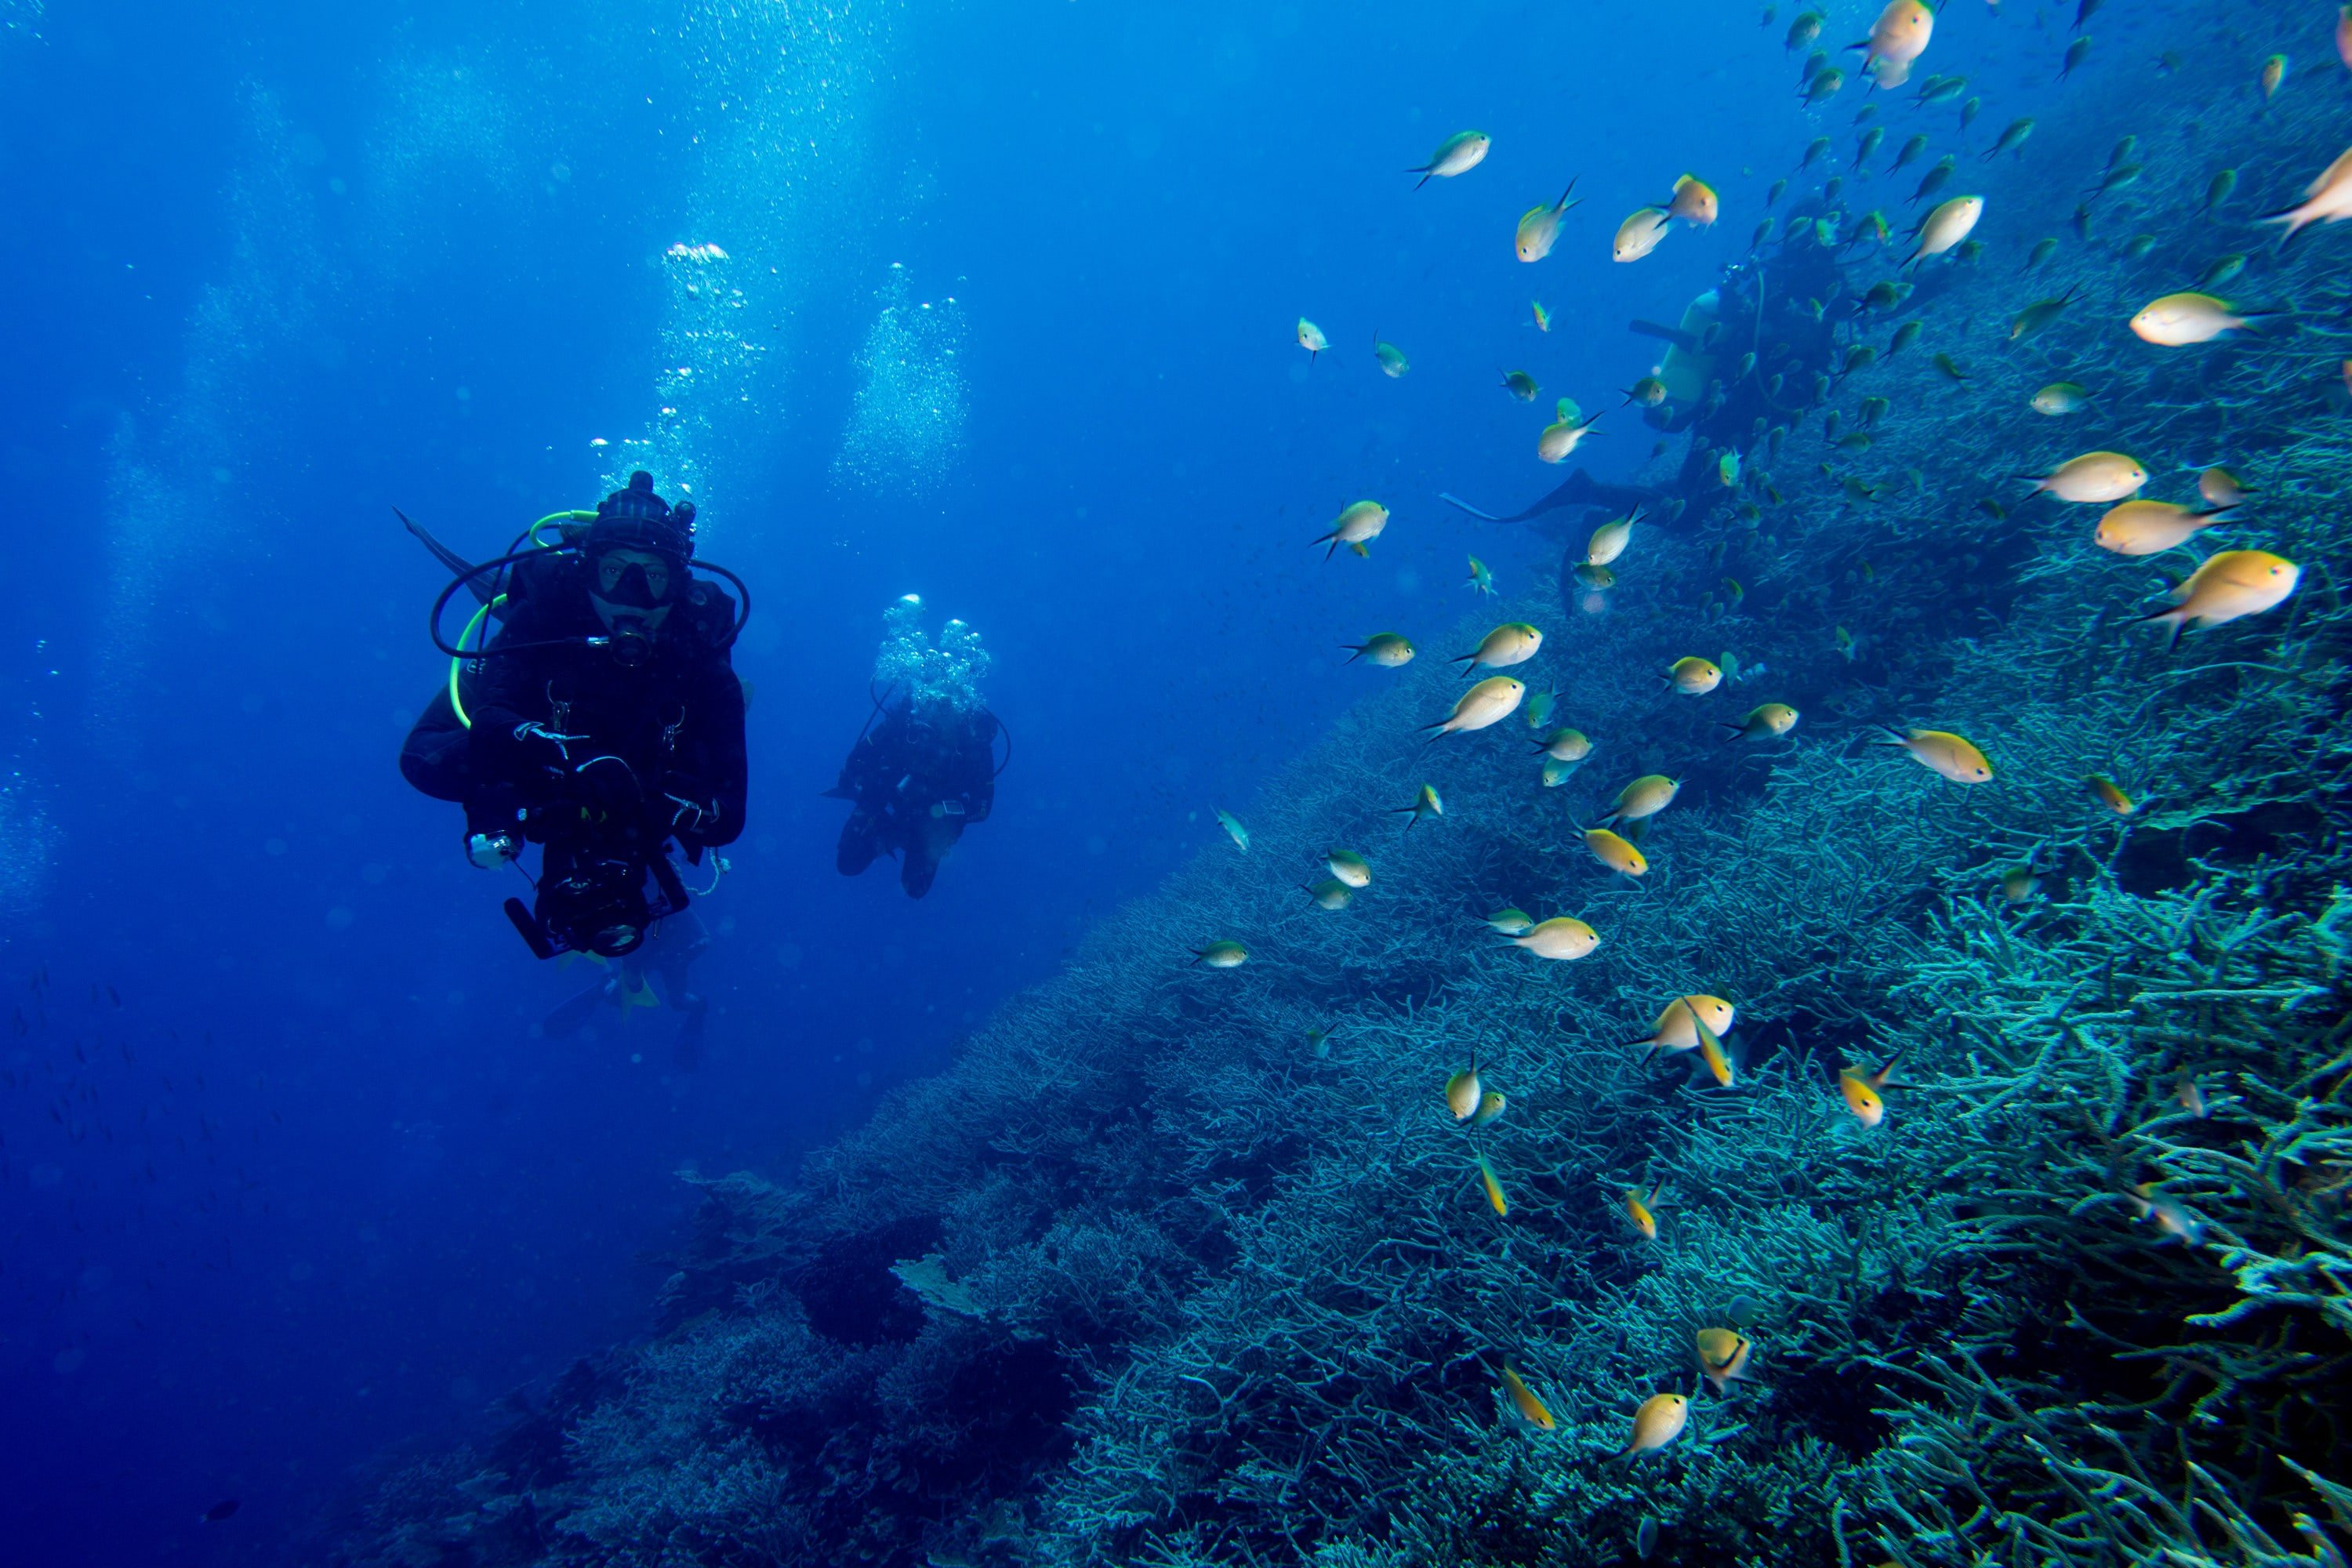 Scuba Diving in fish and corals reefs